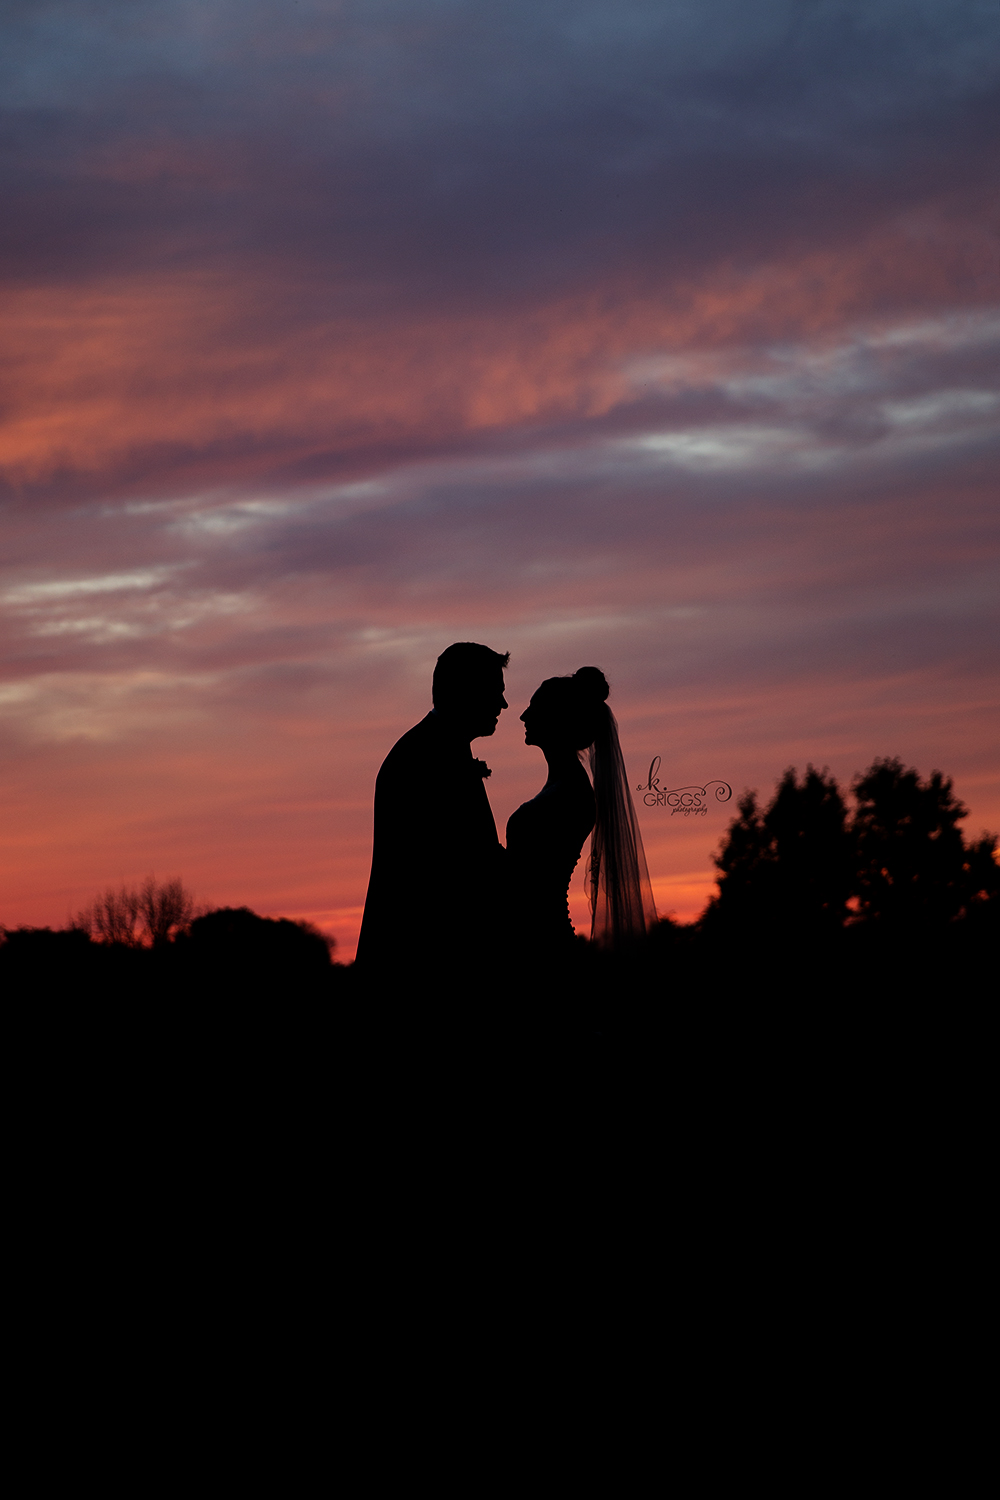 bride and groom in silhouette during sunset | St. Louis Photographer